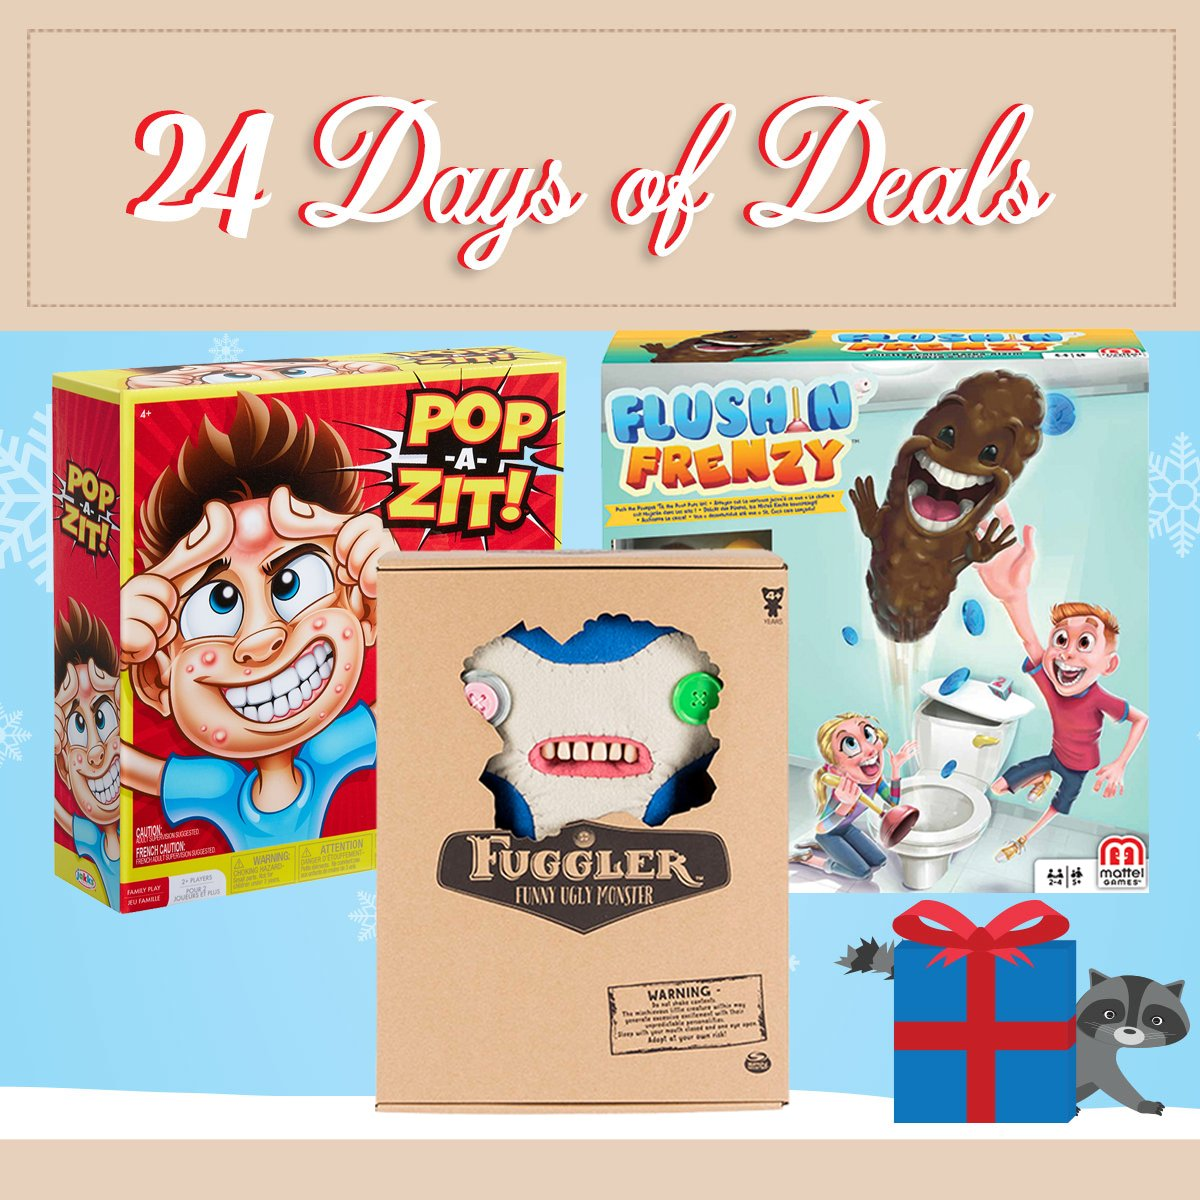 9c89aa9c4e6 Today's deal: Save 20% on select toys in-store and online! Shop online  here: http://bit.ly/2UaAcmb Be sure to check back tomorrow for a new ...